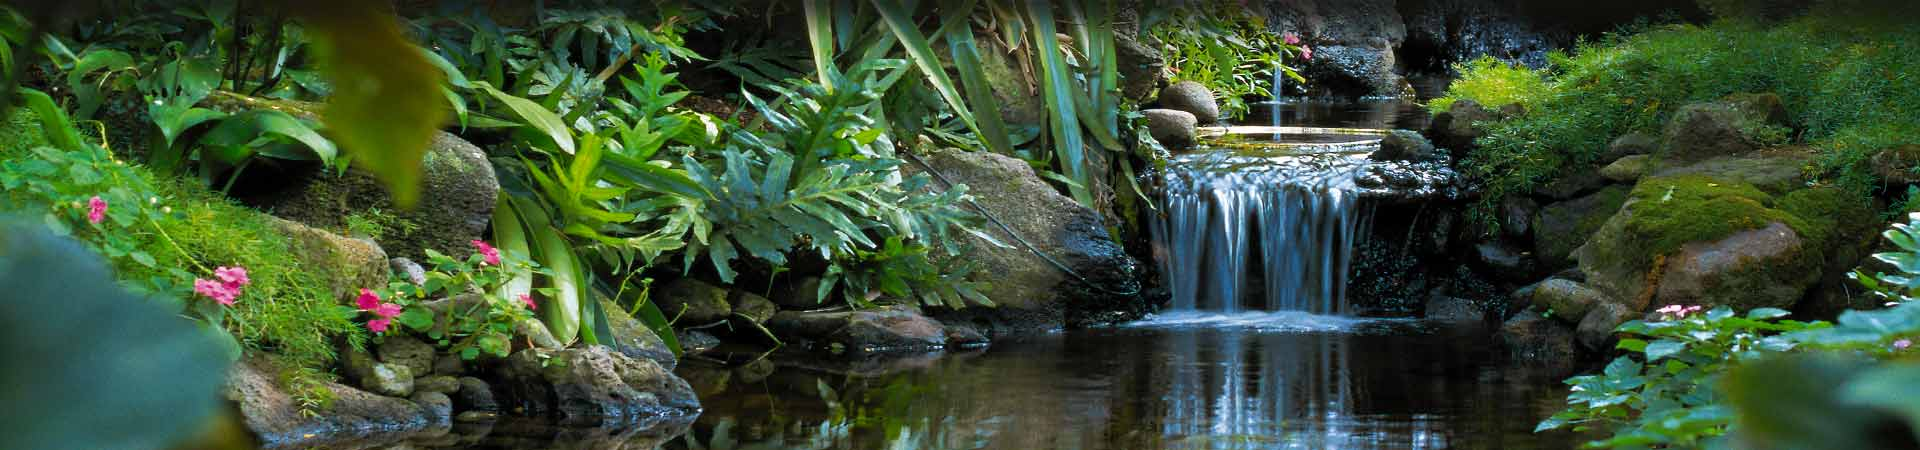 Natural Water stream